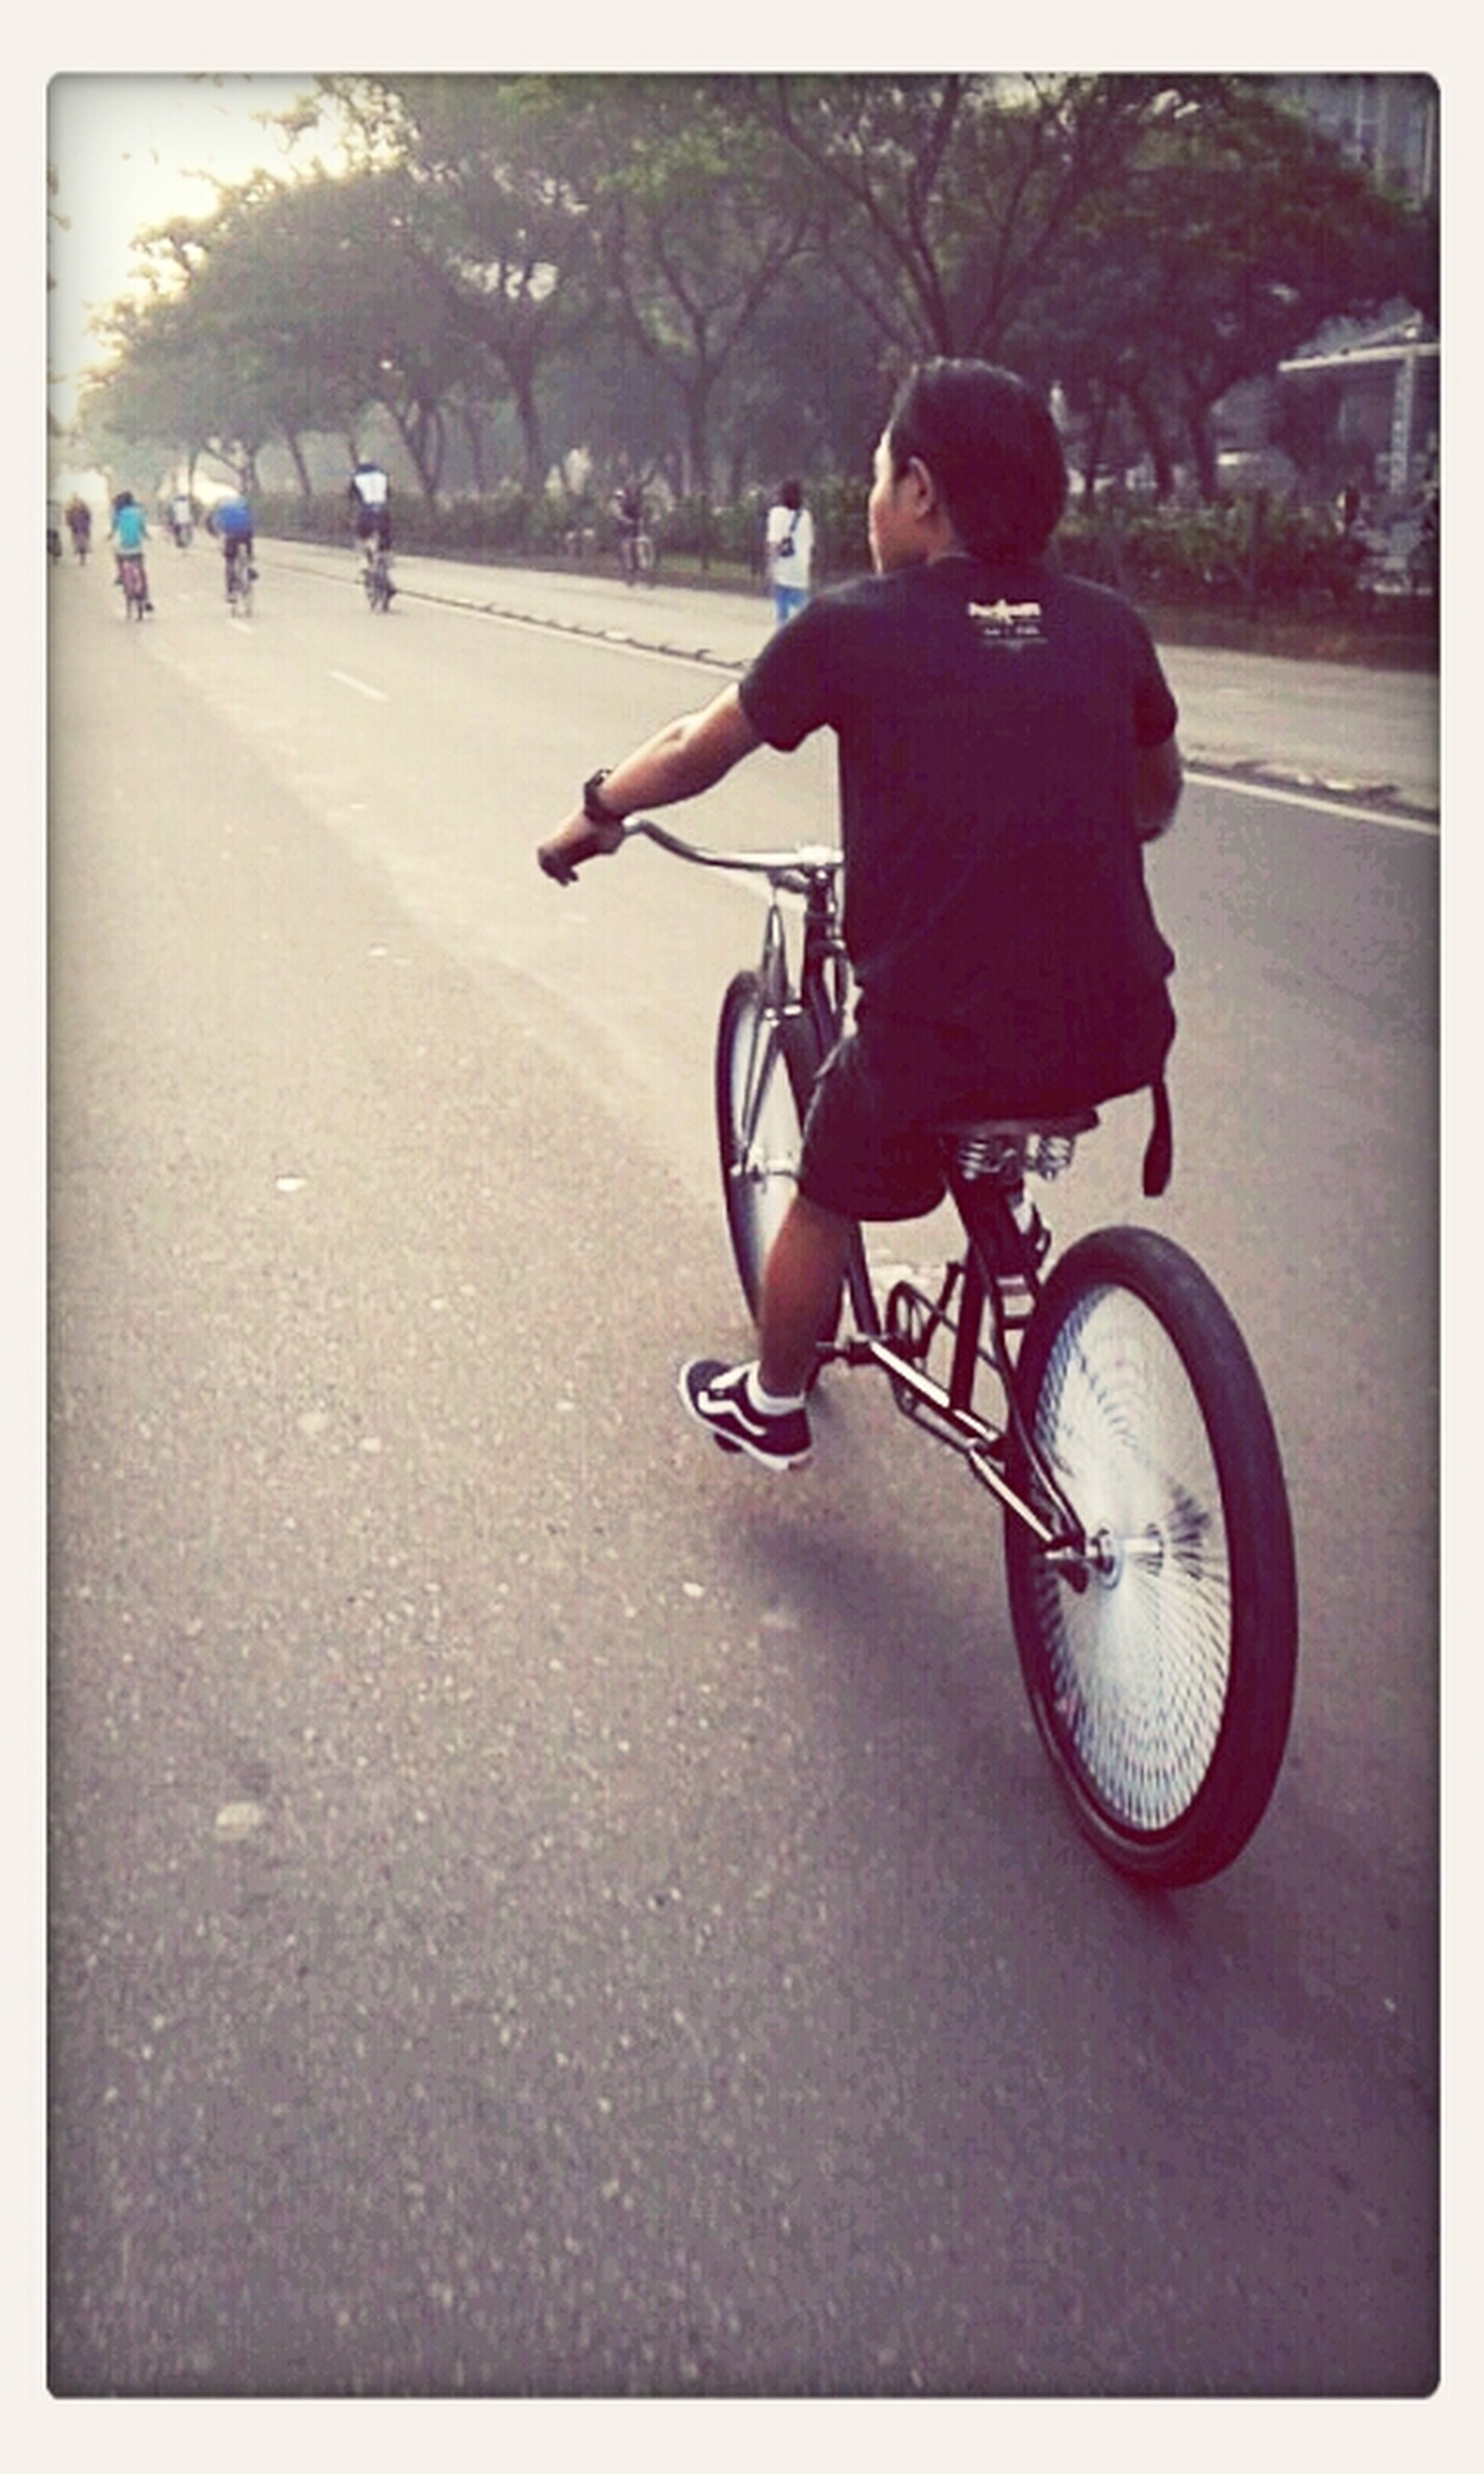 bicycle, full length, lifestyles, transfer print, street, childhood, transportation, land vehicle, leisure activity, mode of transport, boys, casual clothing, auto post production filter, girls, road, elementary age, men, walking